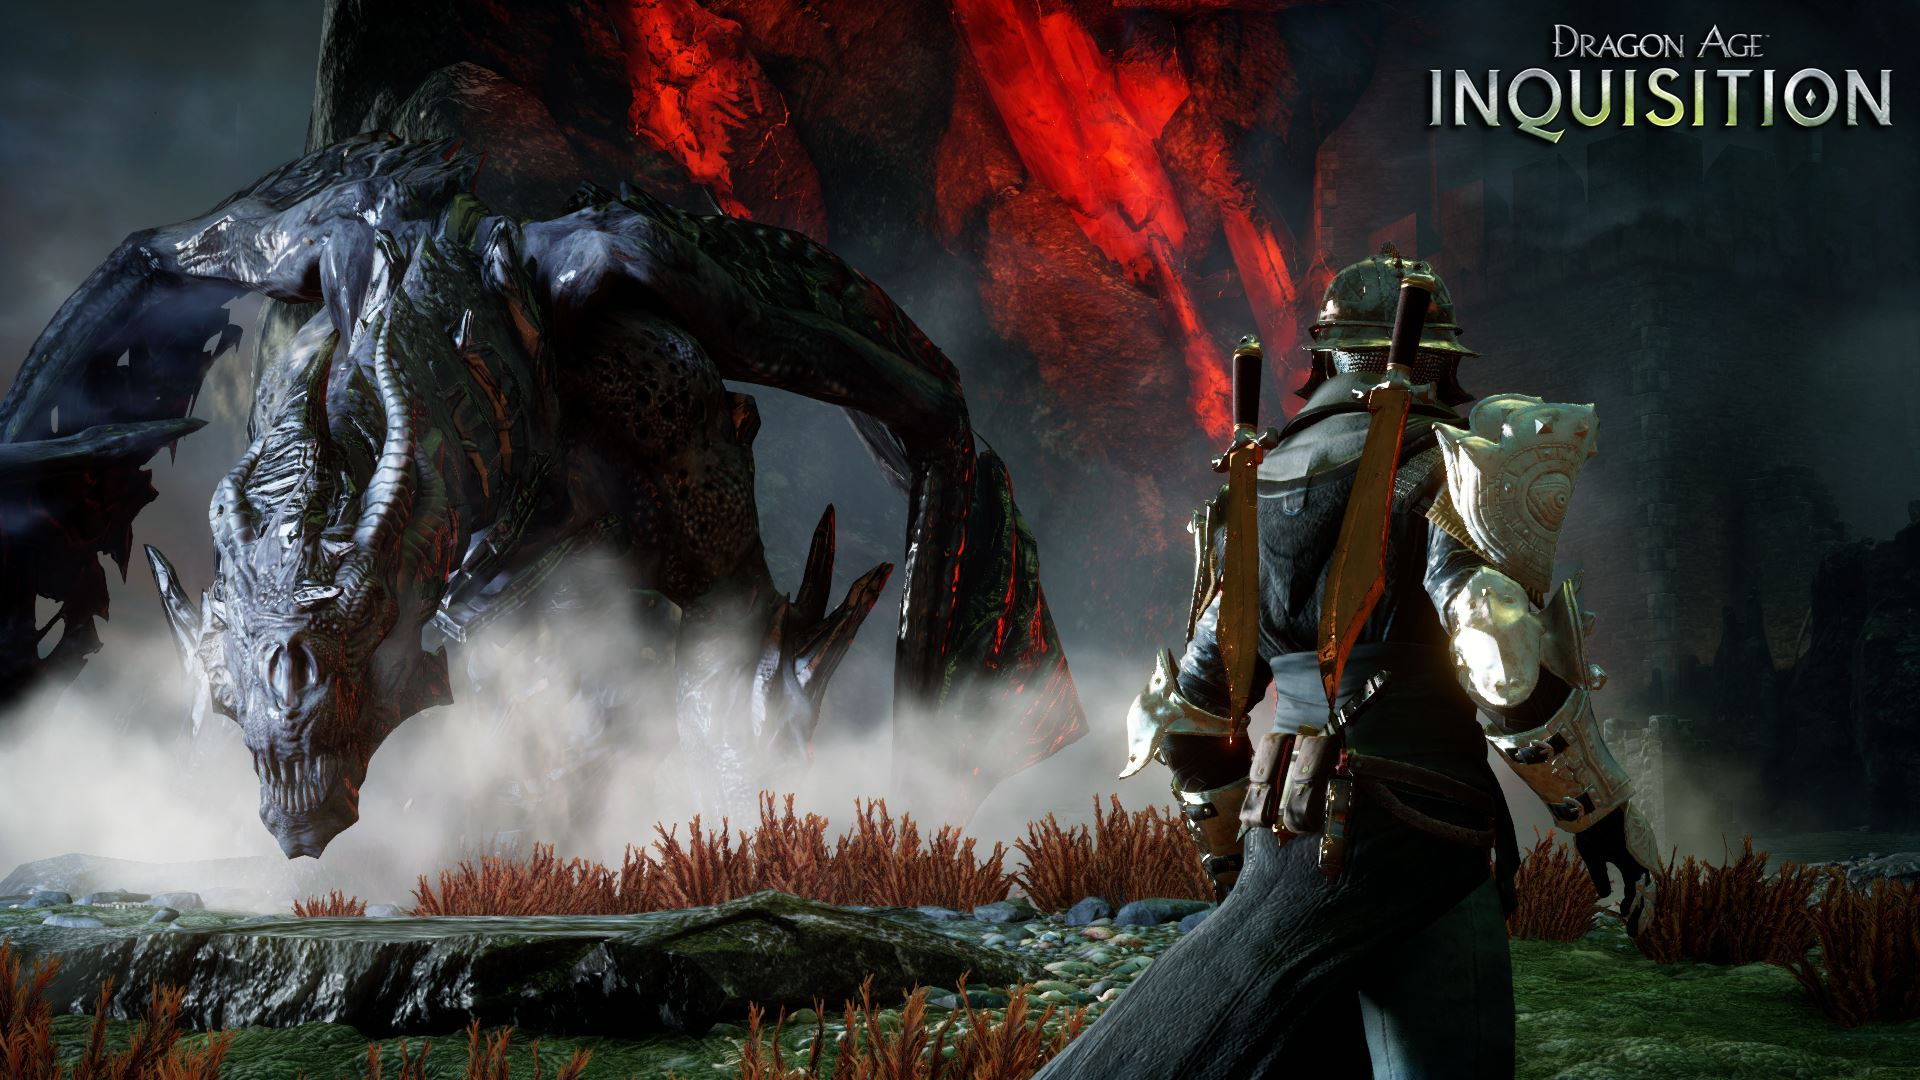 Download Dragon Age Inquisition Deluxe Edition Cracked PC Game